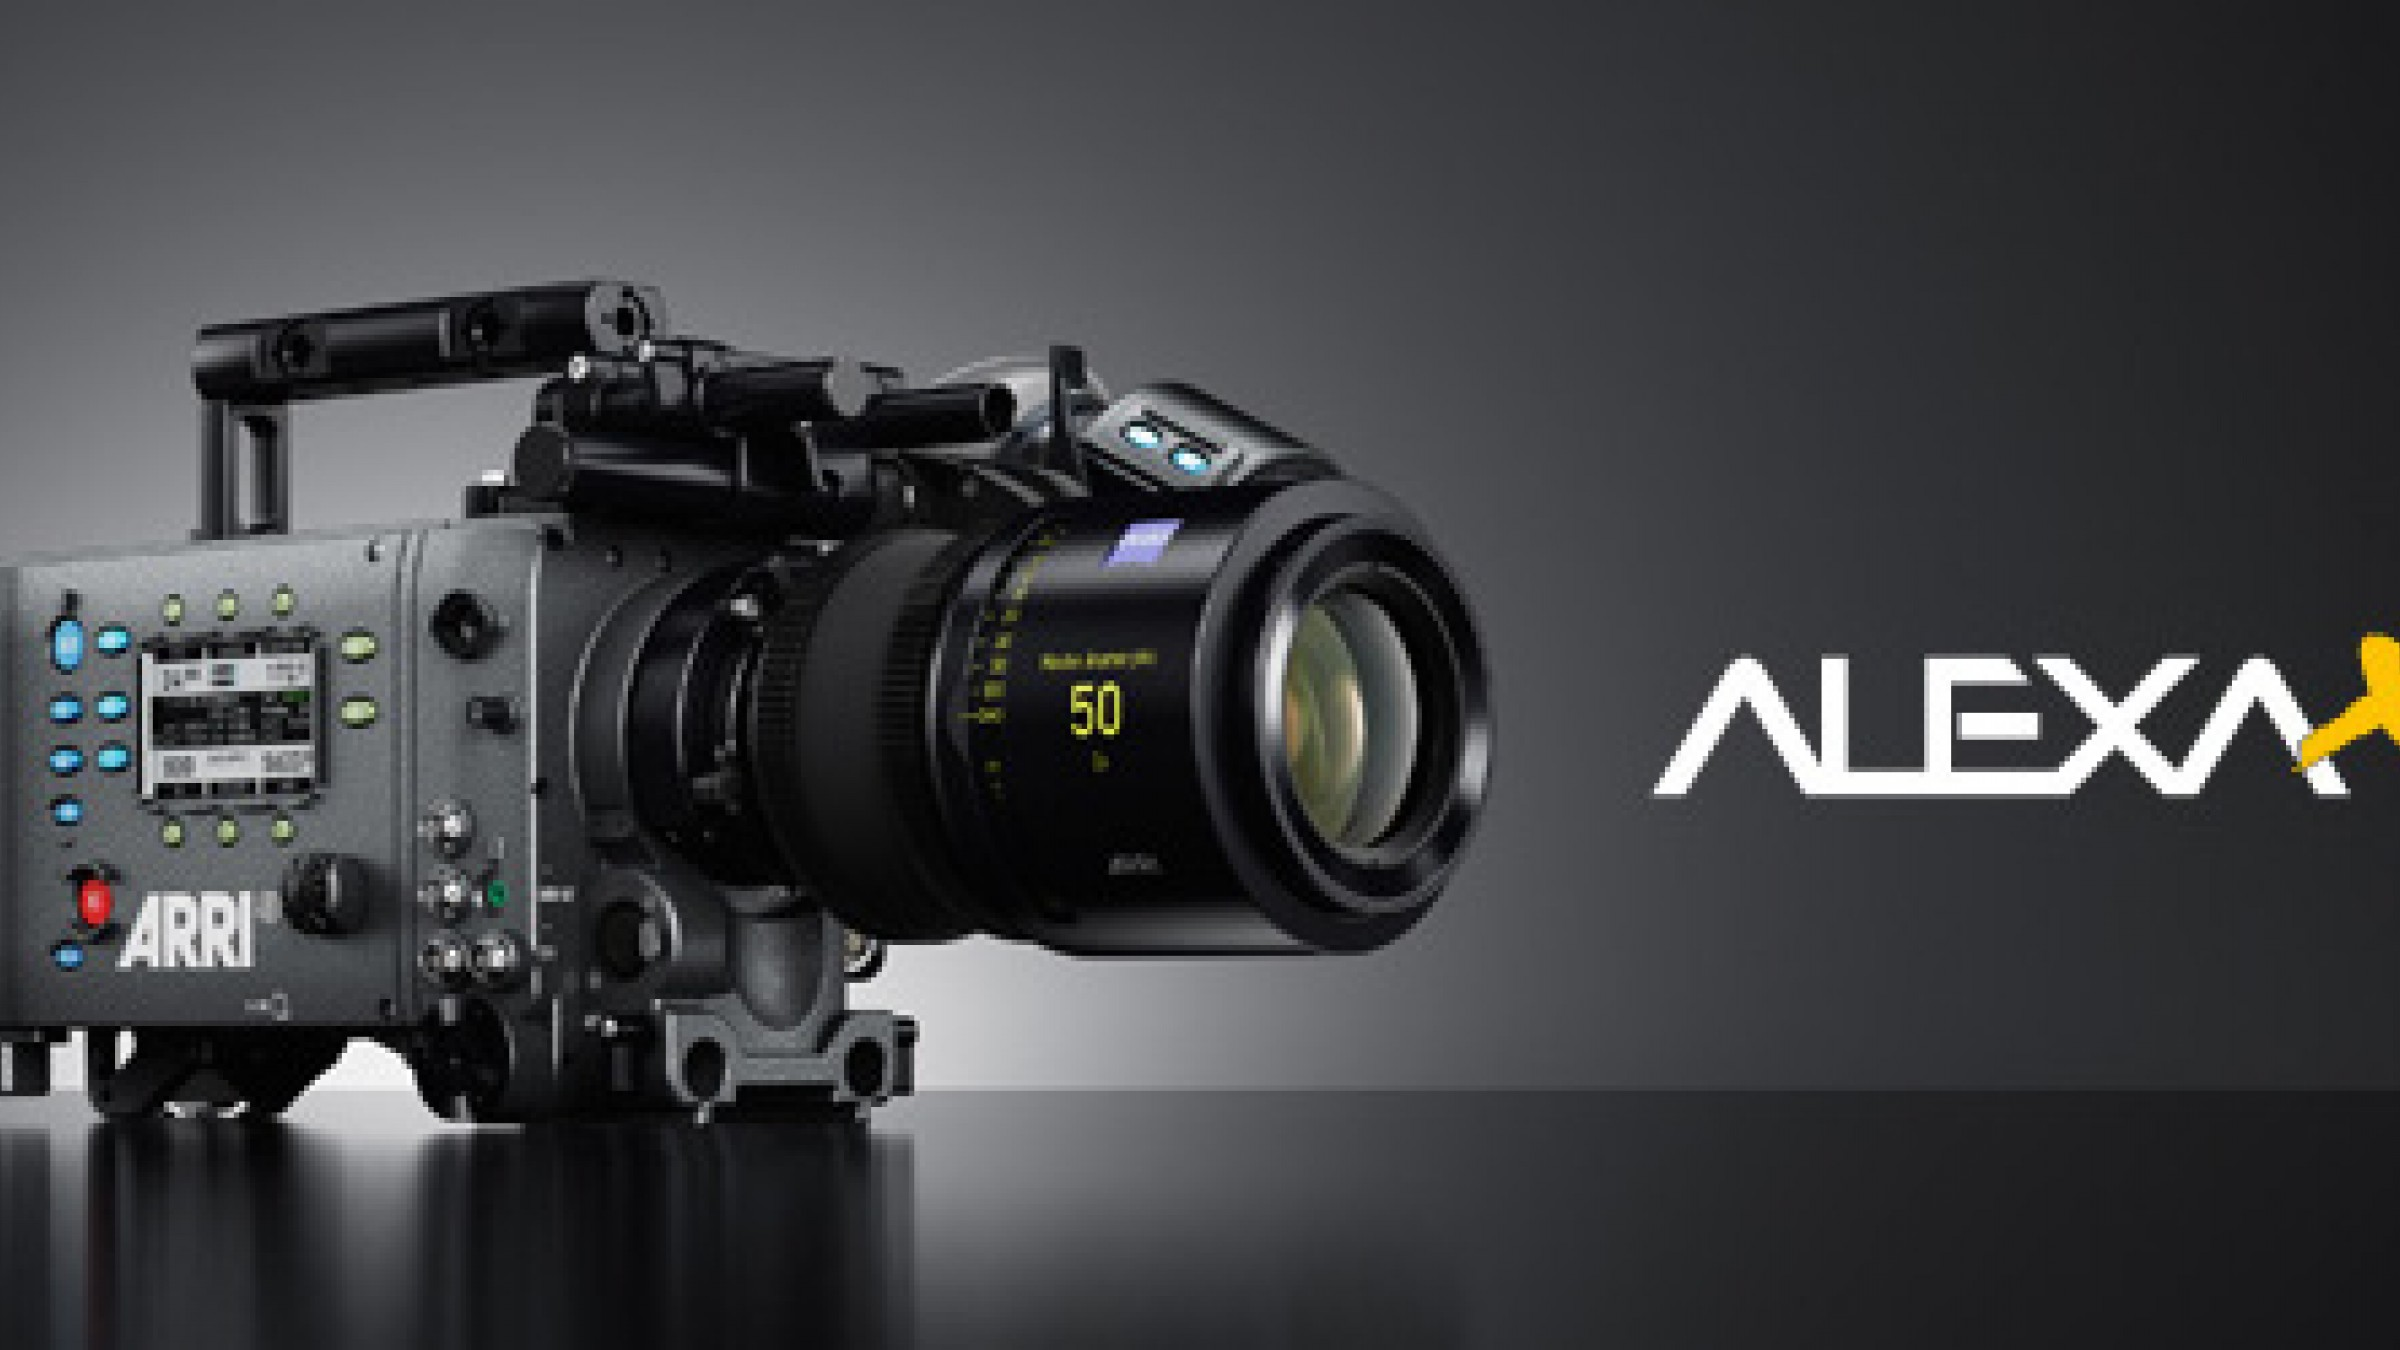 How To Maximize The Image From The Arri Alexa For 4k Delivery